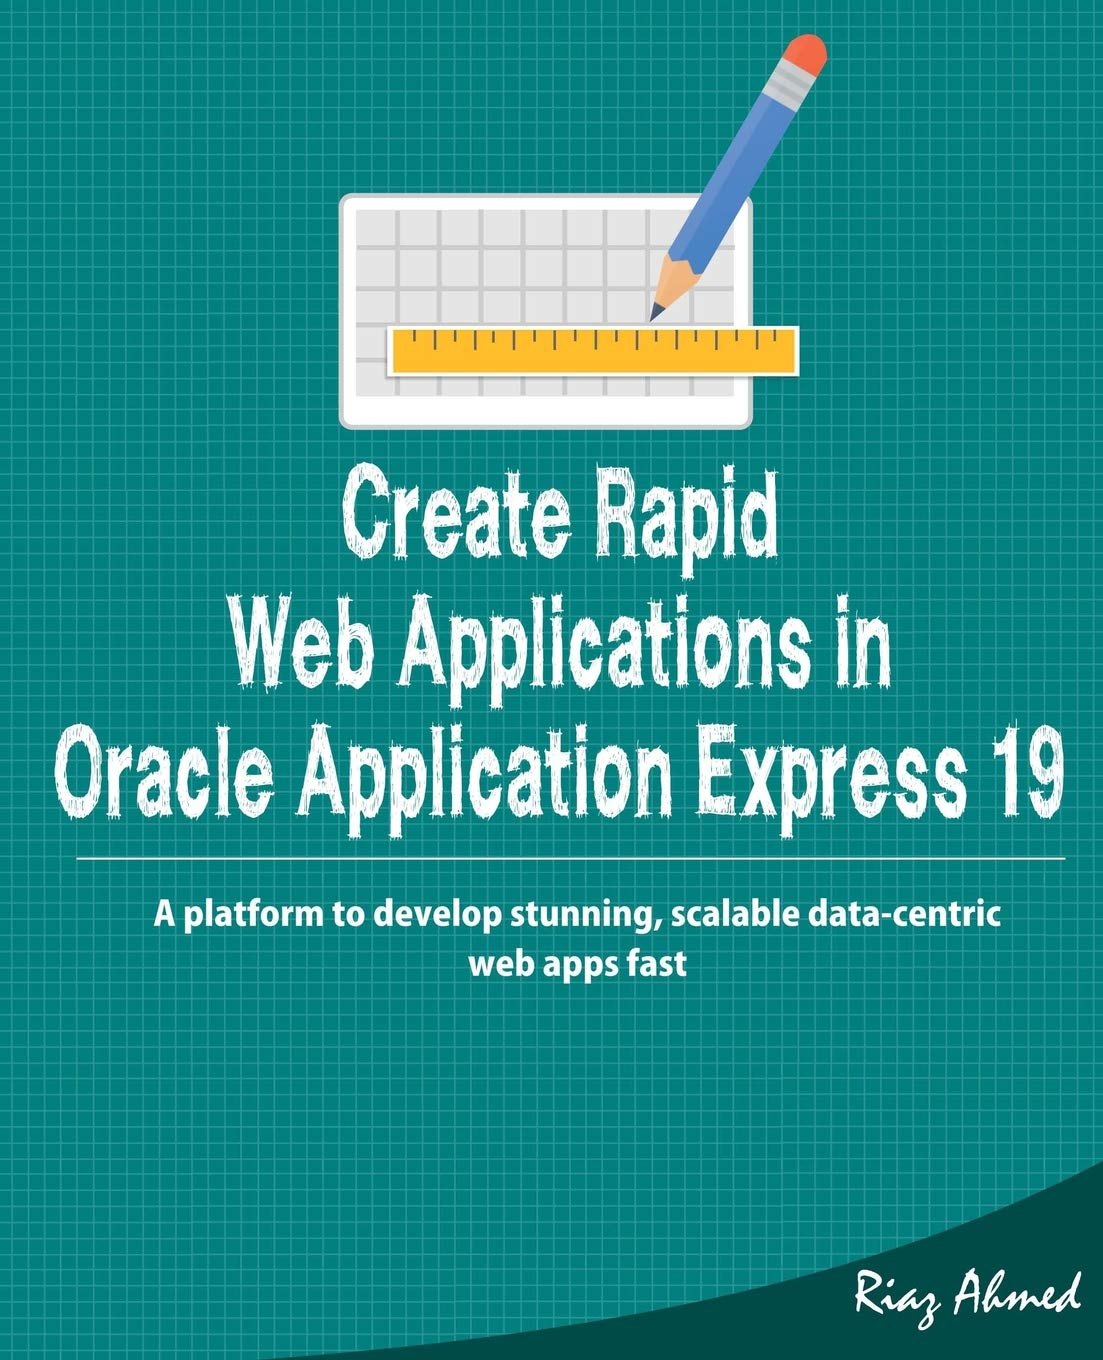 Create Rapid Web Application In Oracle Application Express 19: A Platform To Develop Stunning, Scalable Data-centric Web A...